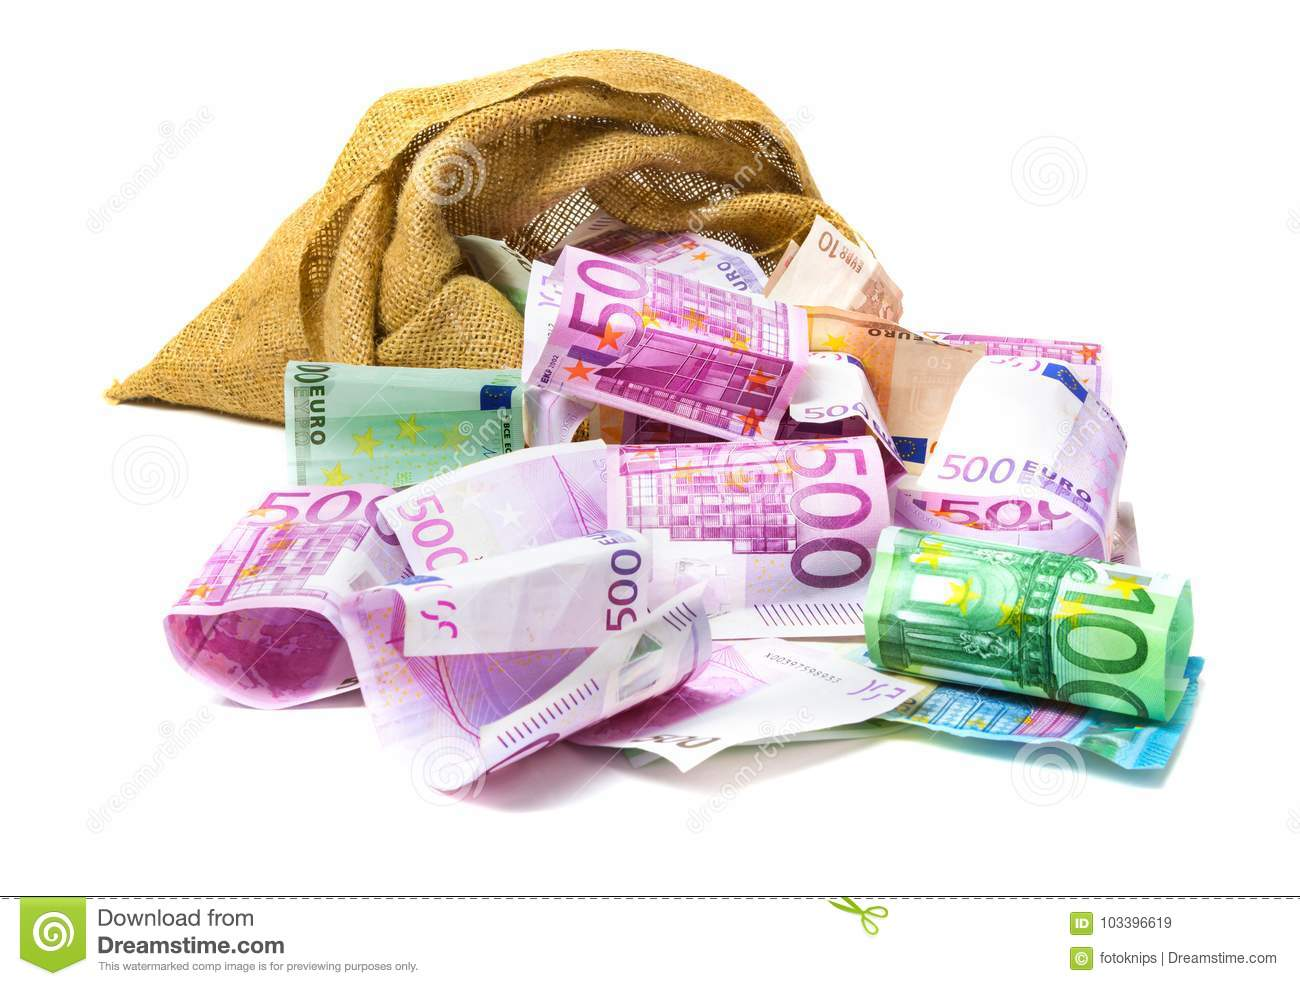 Euro money out of the bag